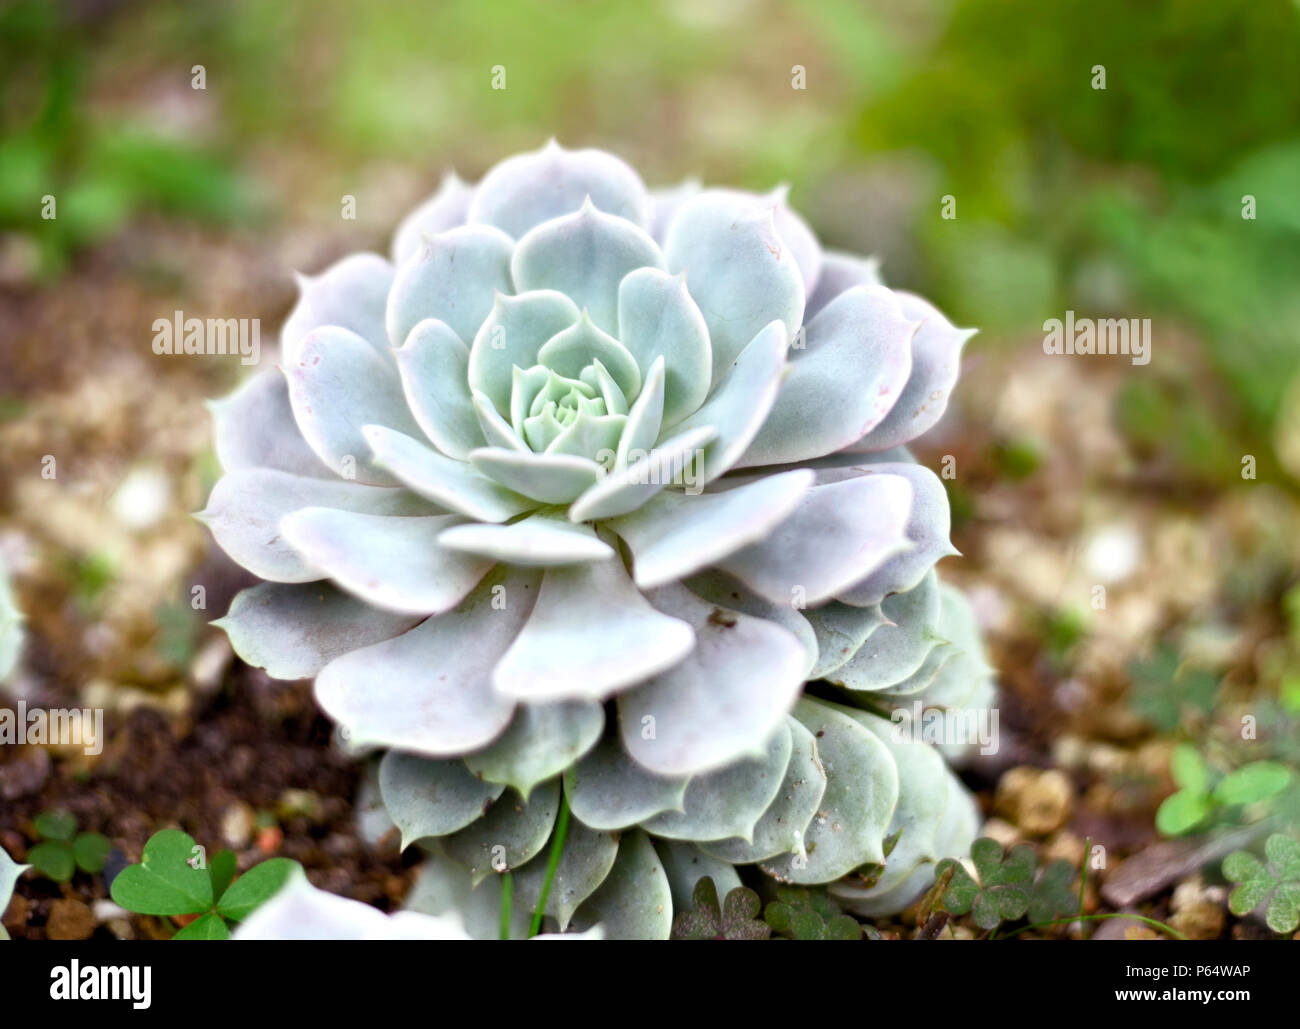 Green succulent plant, beautiful desert plant, close-up shot. - Stock Image